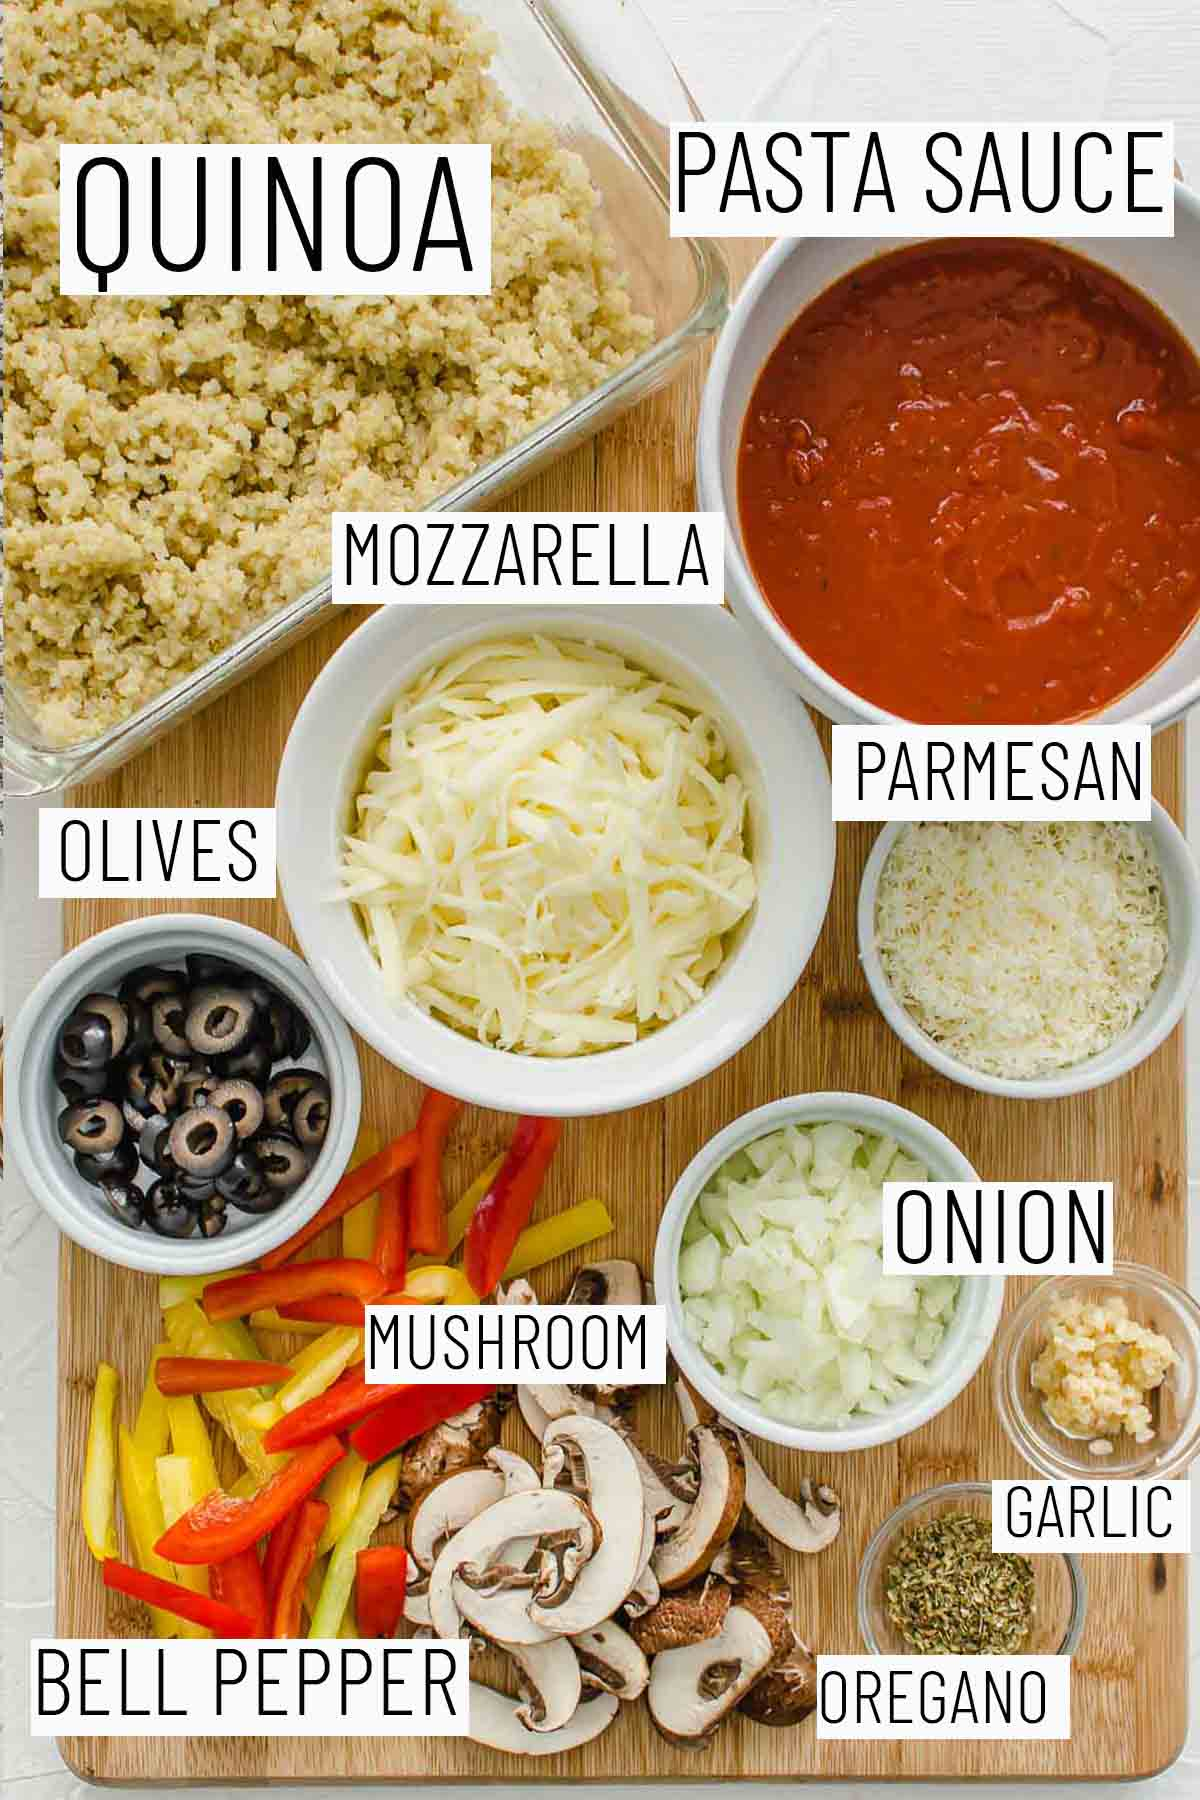 Flat lay image of portioned recipe ingredients including parmesan, mozzarella, olives, onion, garlic, oregano, bell pepper, quinoa, and pasta sauce.